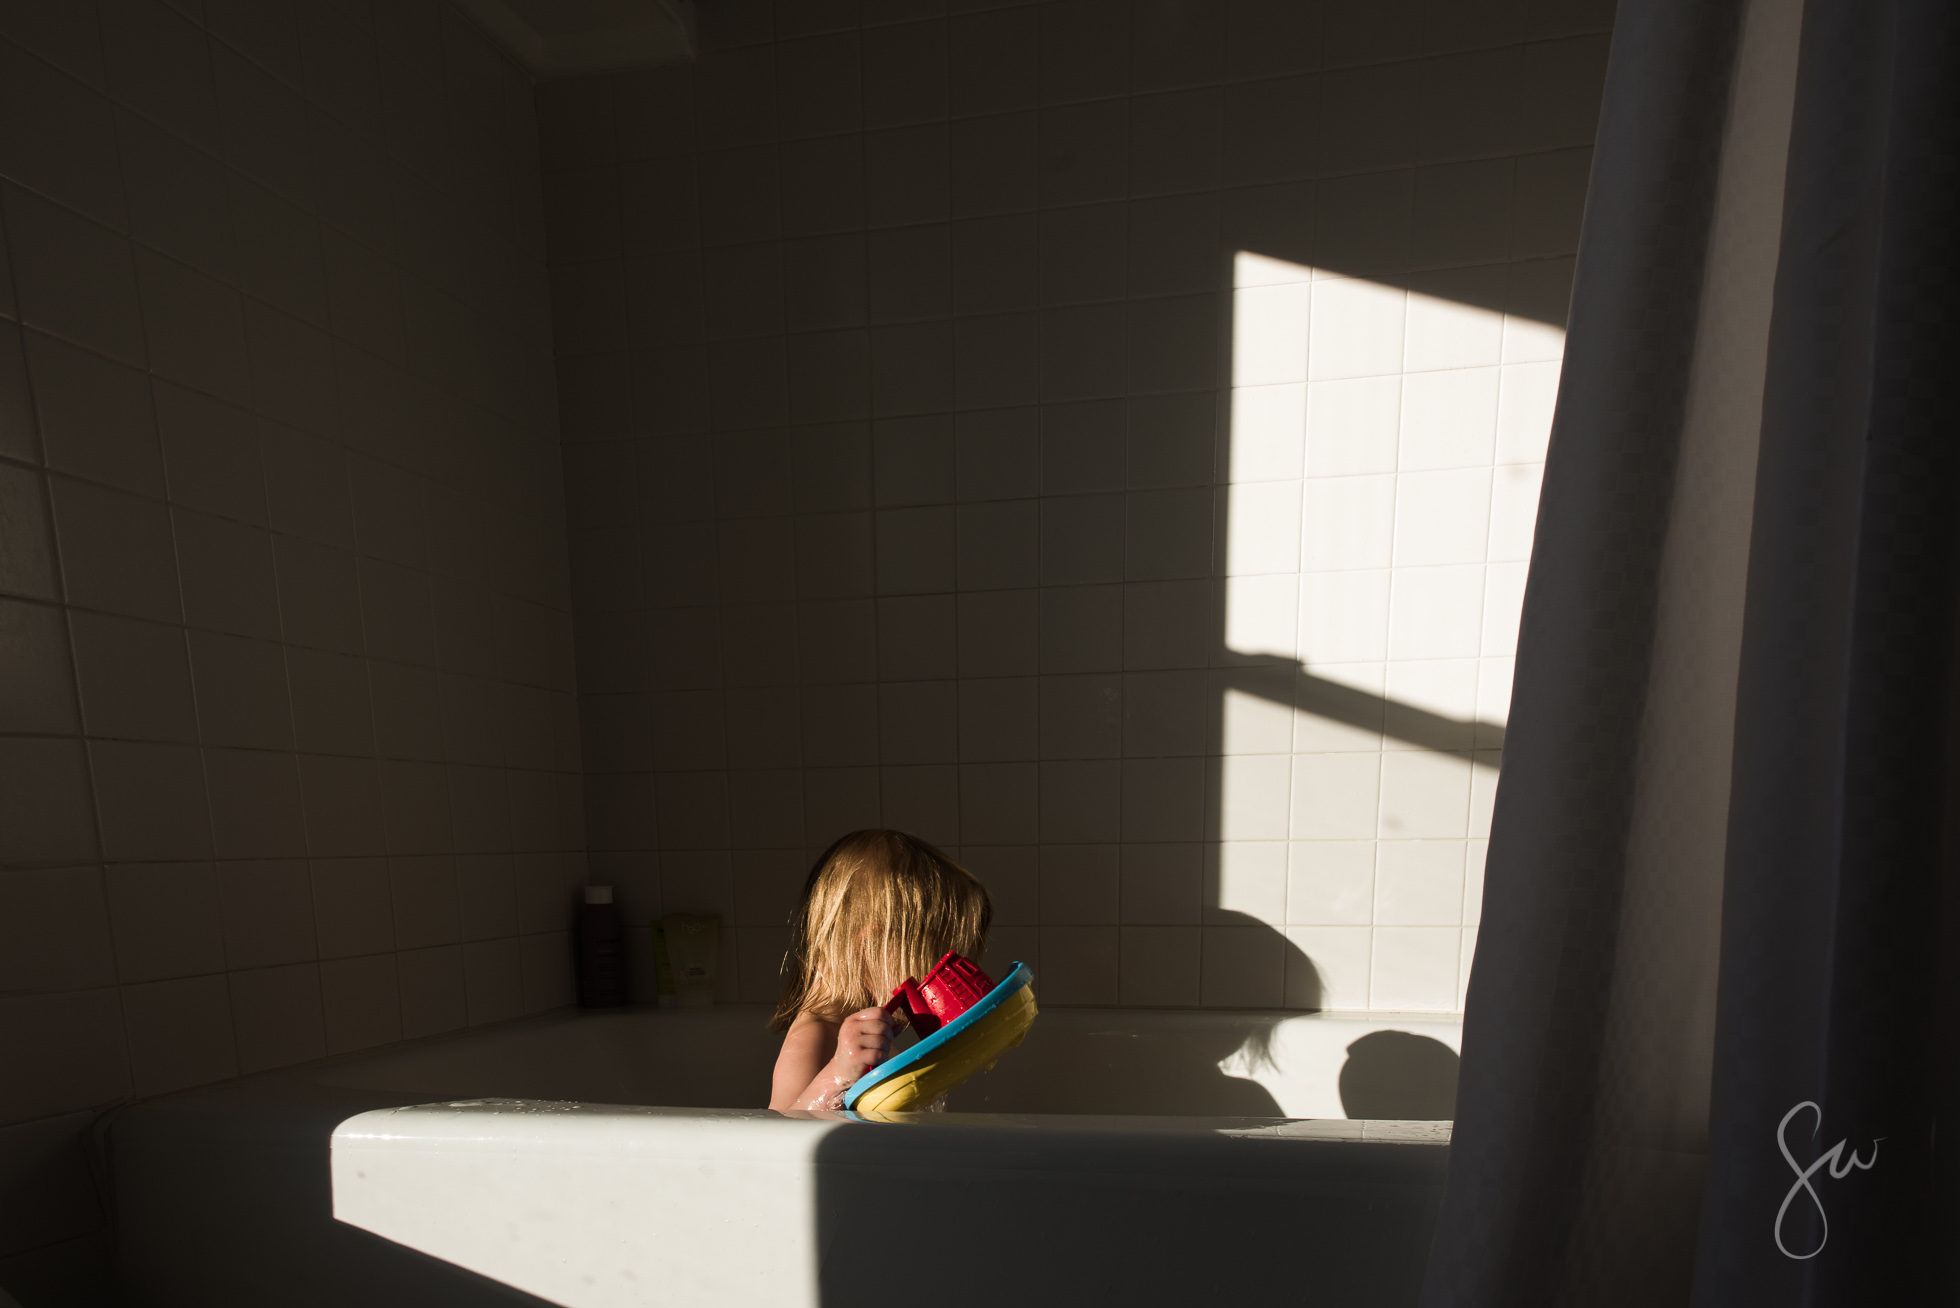 Little-Girl-Playing-with-Colorful-Tub-Toys-Boat-in-White-Bathtub-with-Amazing-Shadows-and-Beautiful-Light-by-Sarah-Wilkerson-